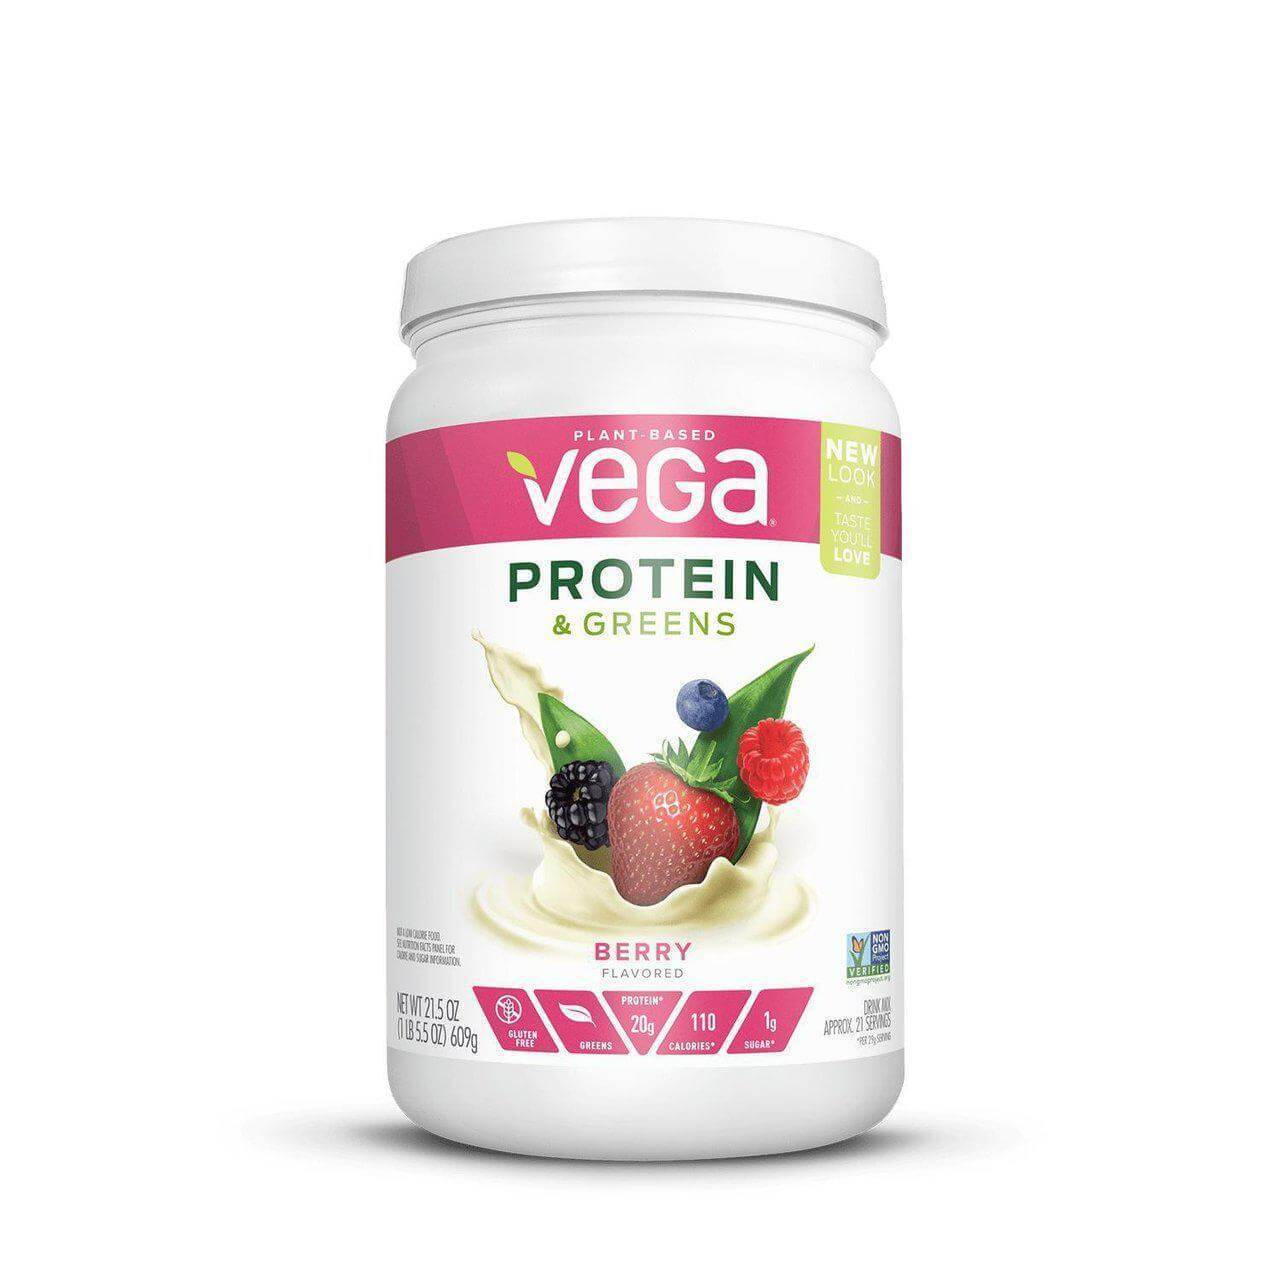 Vega Protein And Greens, June 2021